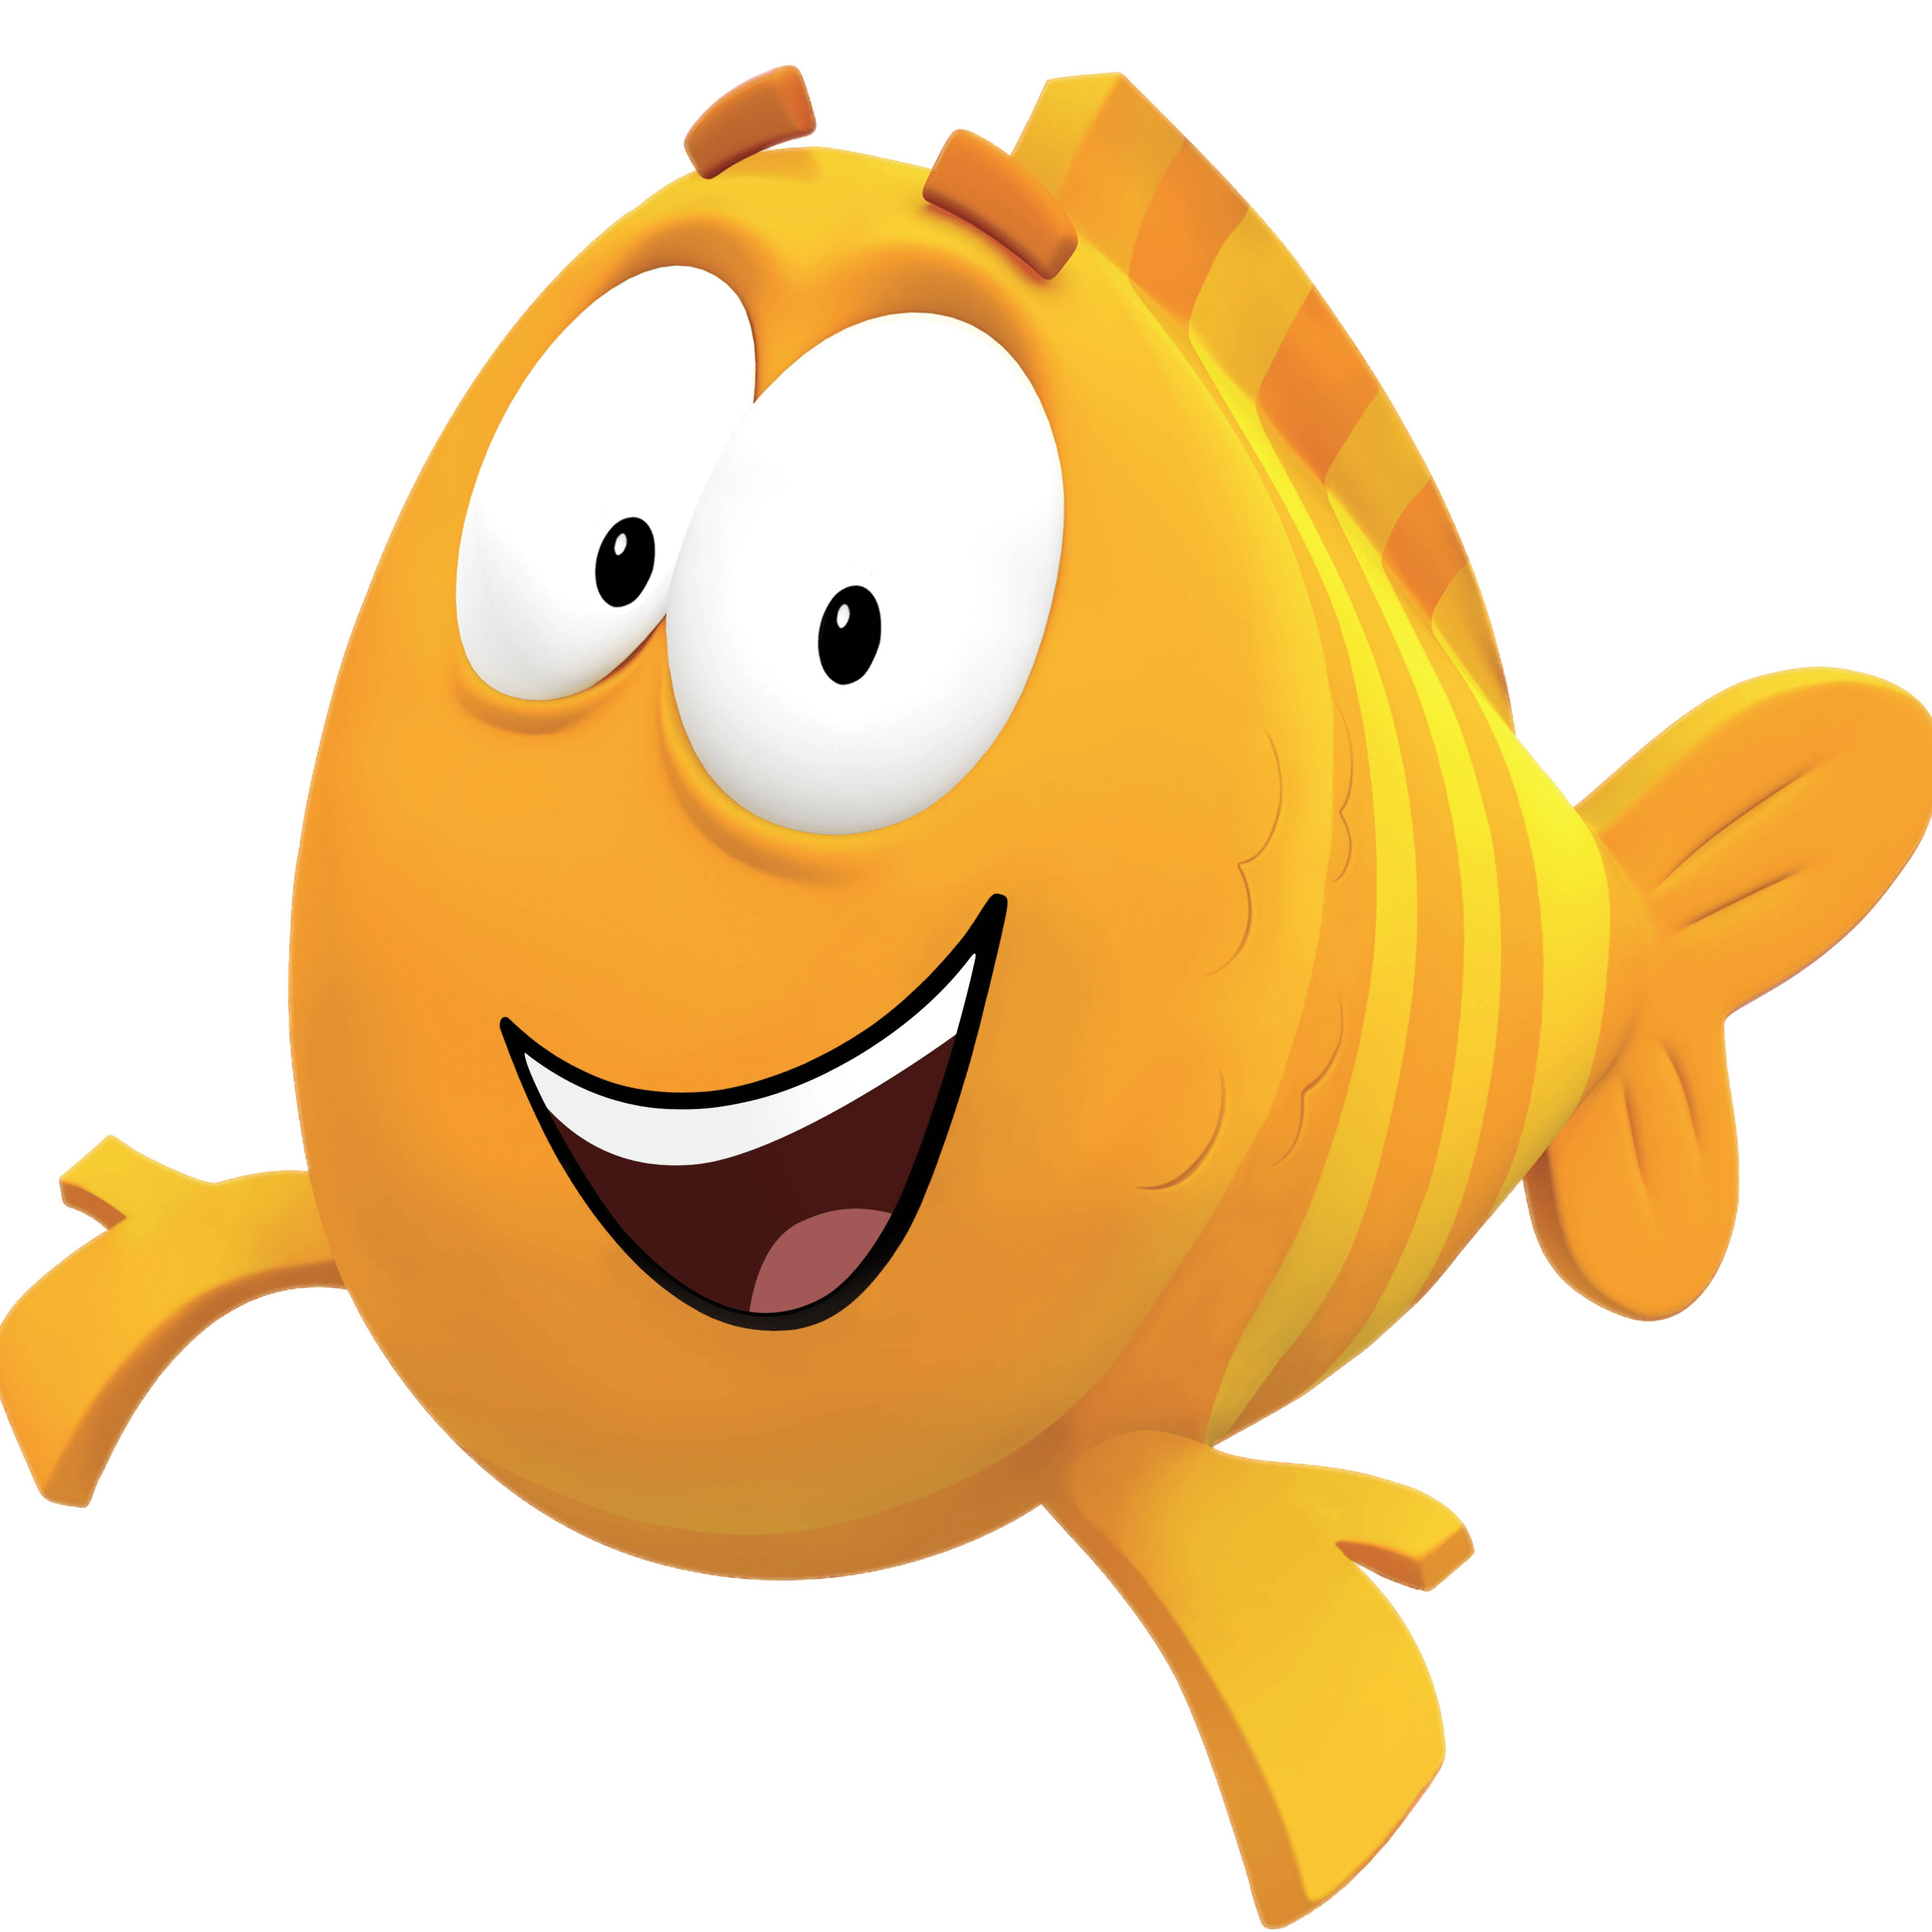 Fish bubbles clipart png vector royalty free Bubble Guppies Fish Mr. Grouper transparent PNG - StickPNG vector royalty free